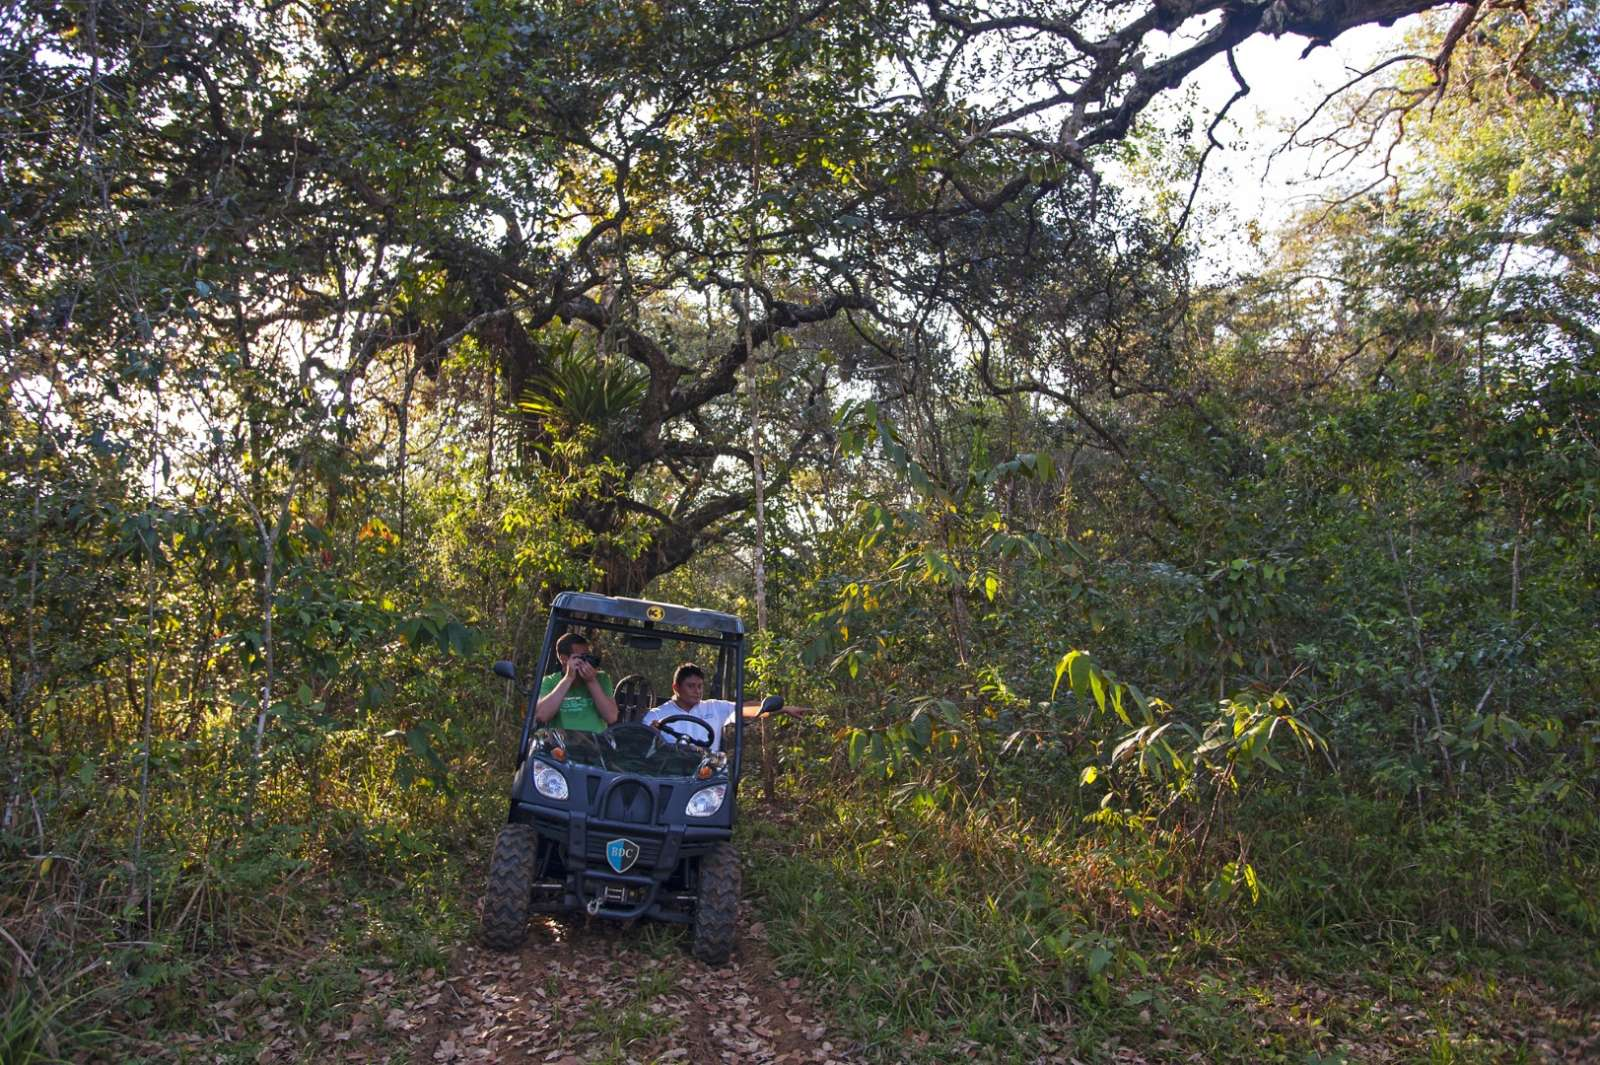 Nature park buggy ride at Hotel Las Lagunas, Guatemala